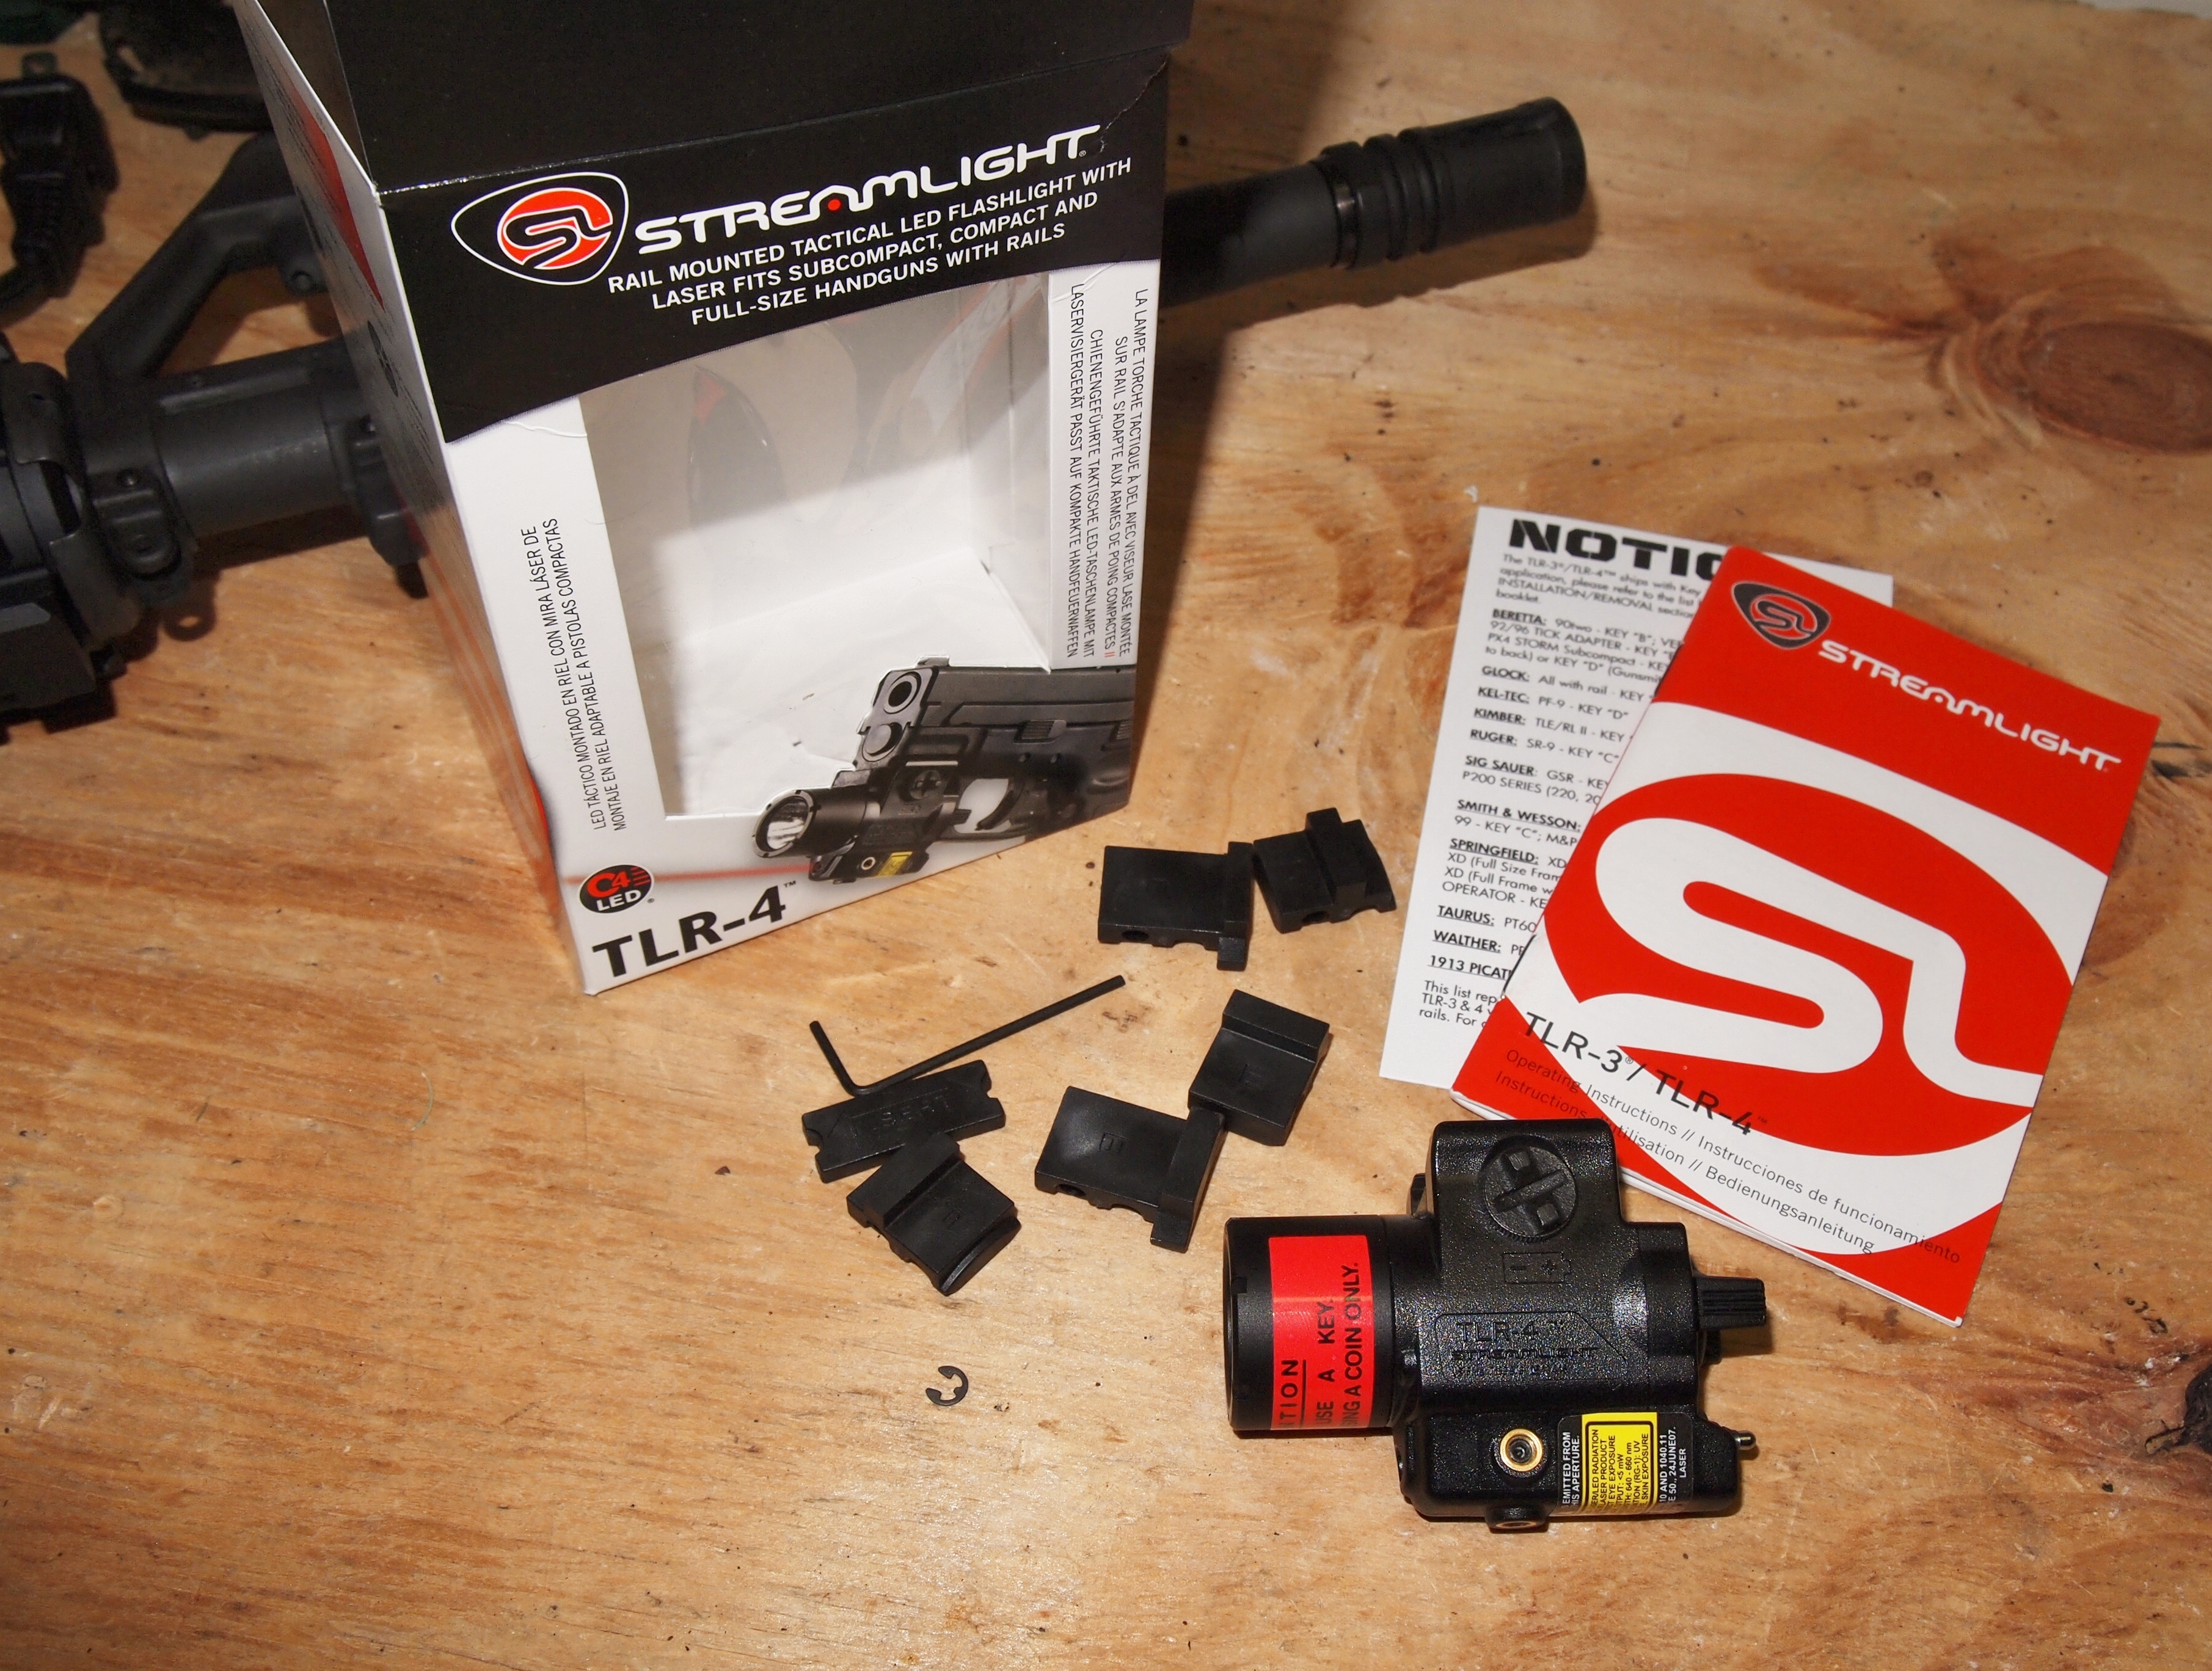 Tlr Gunmart Weapon ReviewStreamlight Laser Blog And 4 Light qSUzGMVp